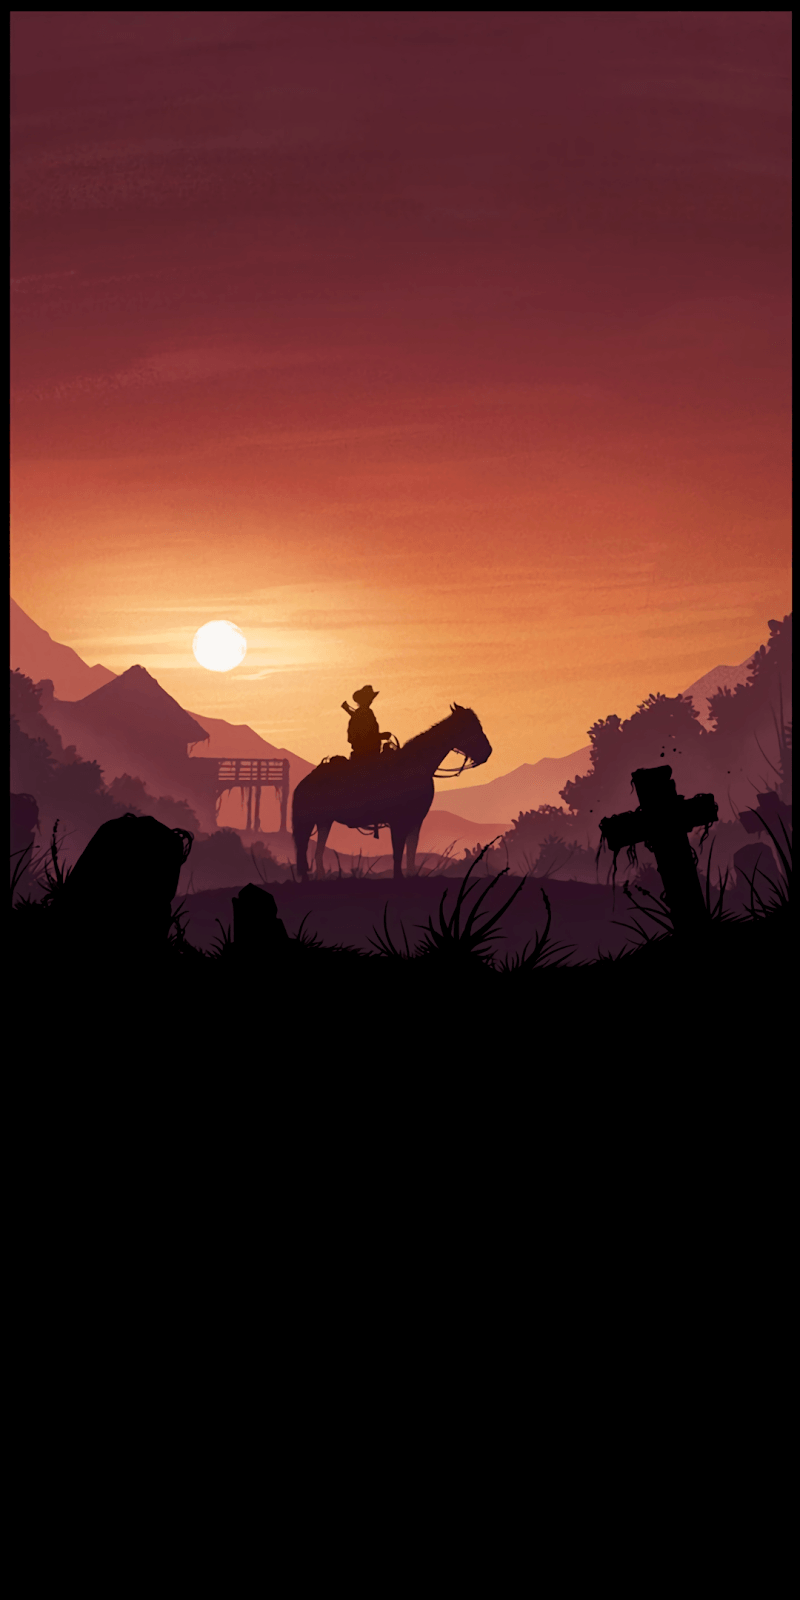 Rdr 2 Wallpapers Wallpaper Cave